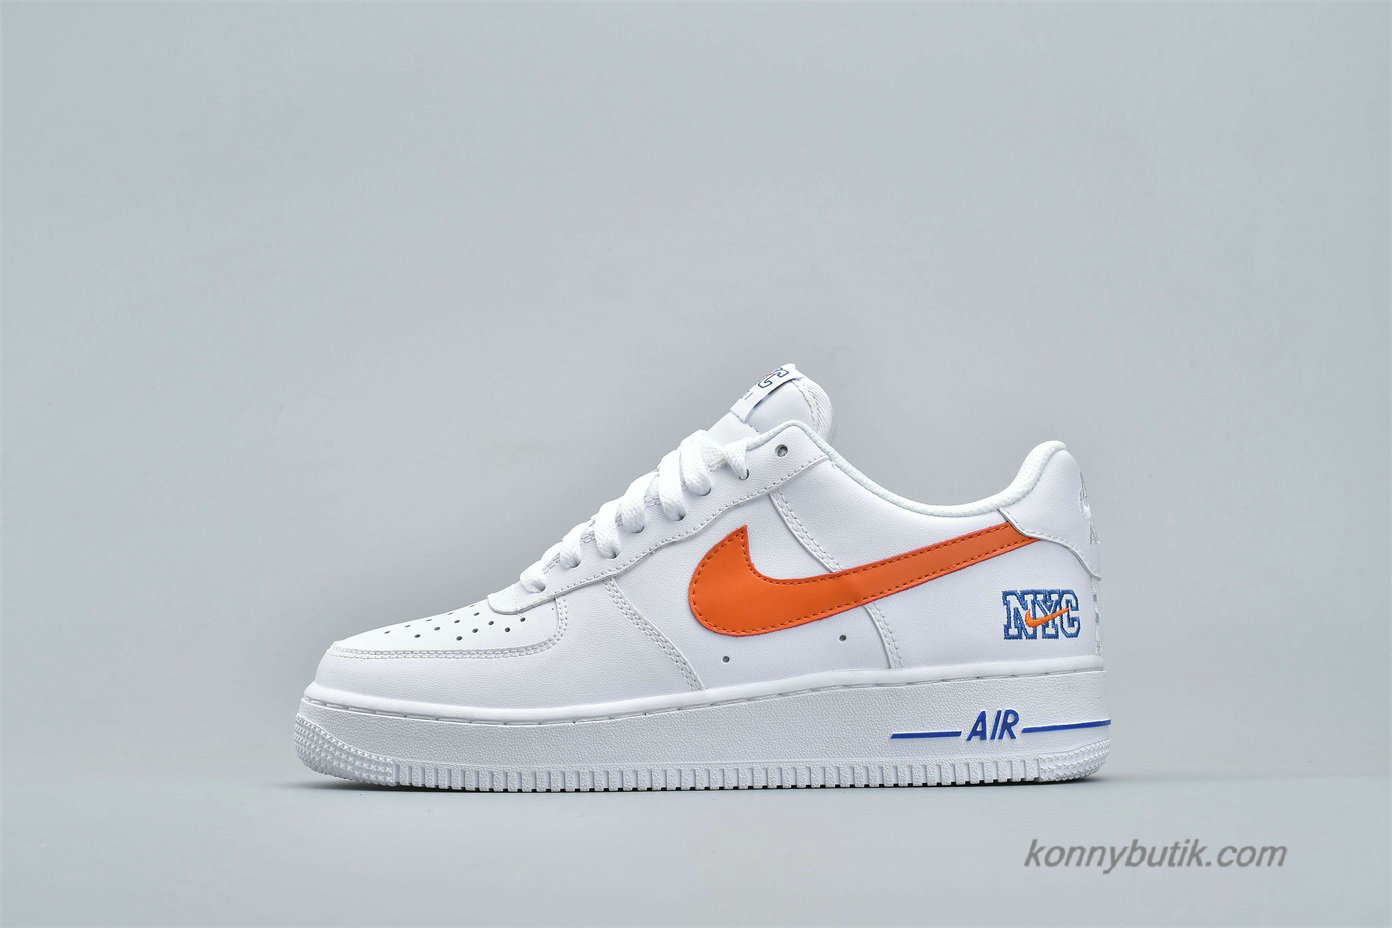 Nike Air Force 1 Low NYC HS Herre Sko Hvid / Blå / Orange (722241-844)